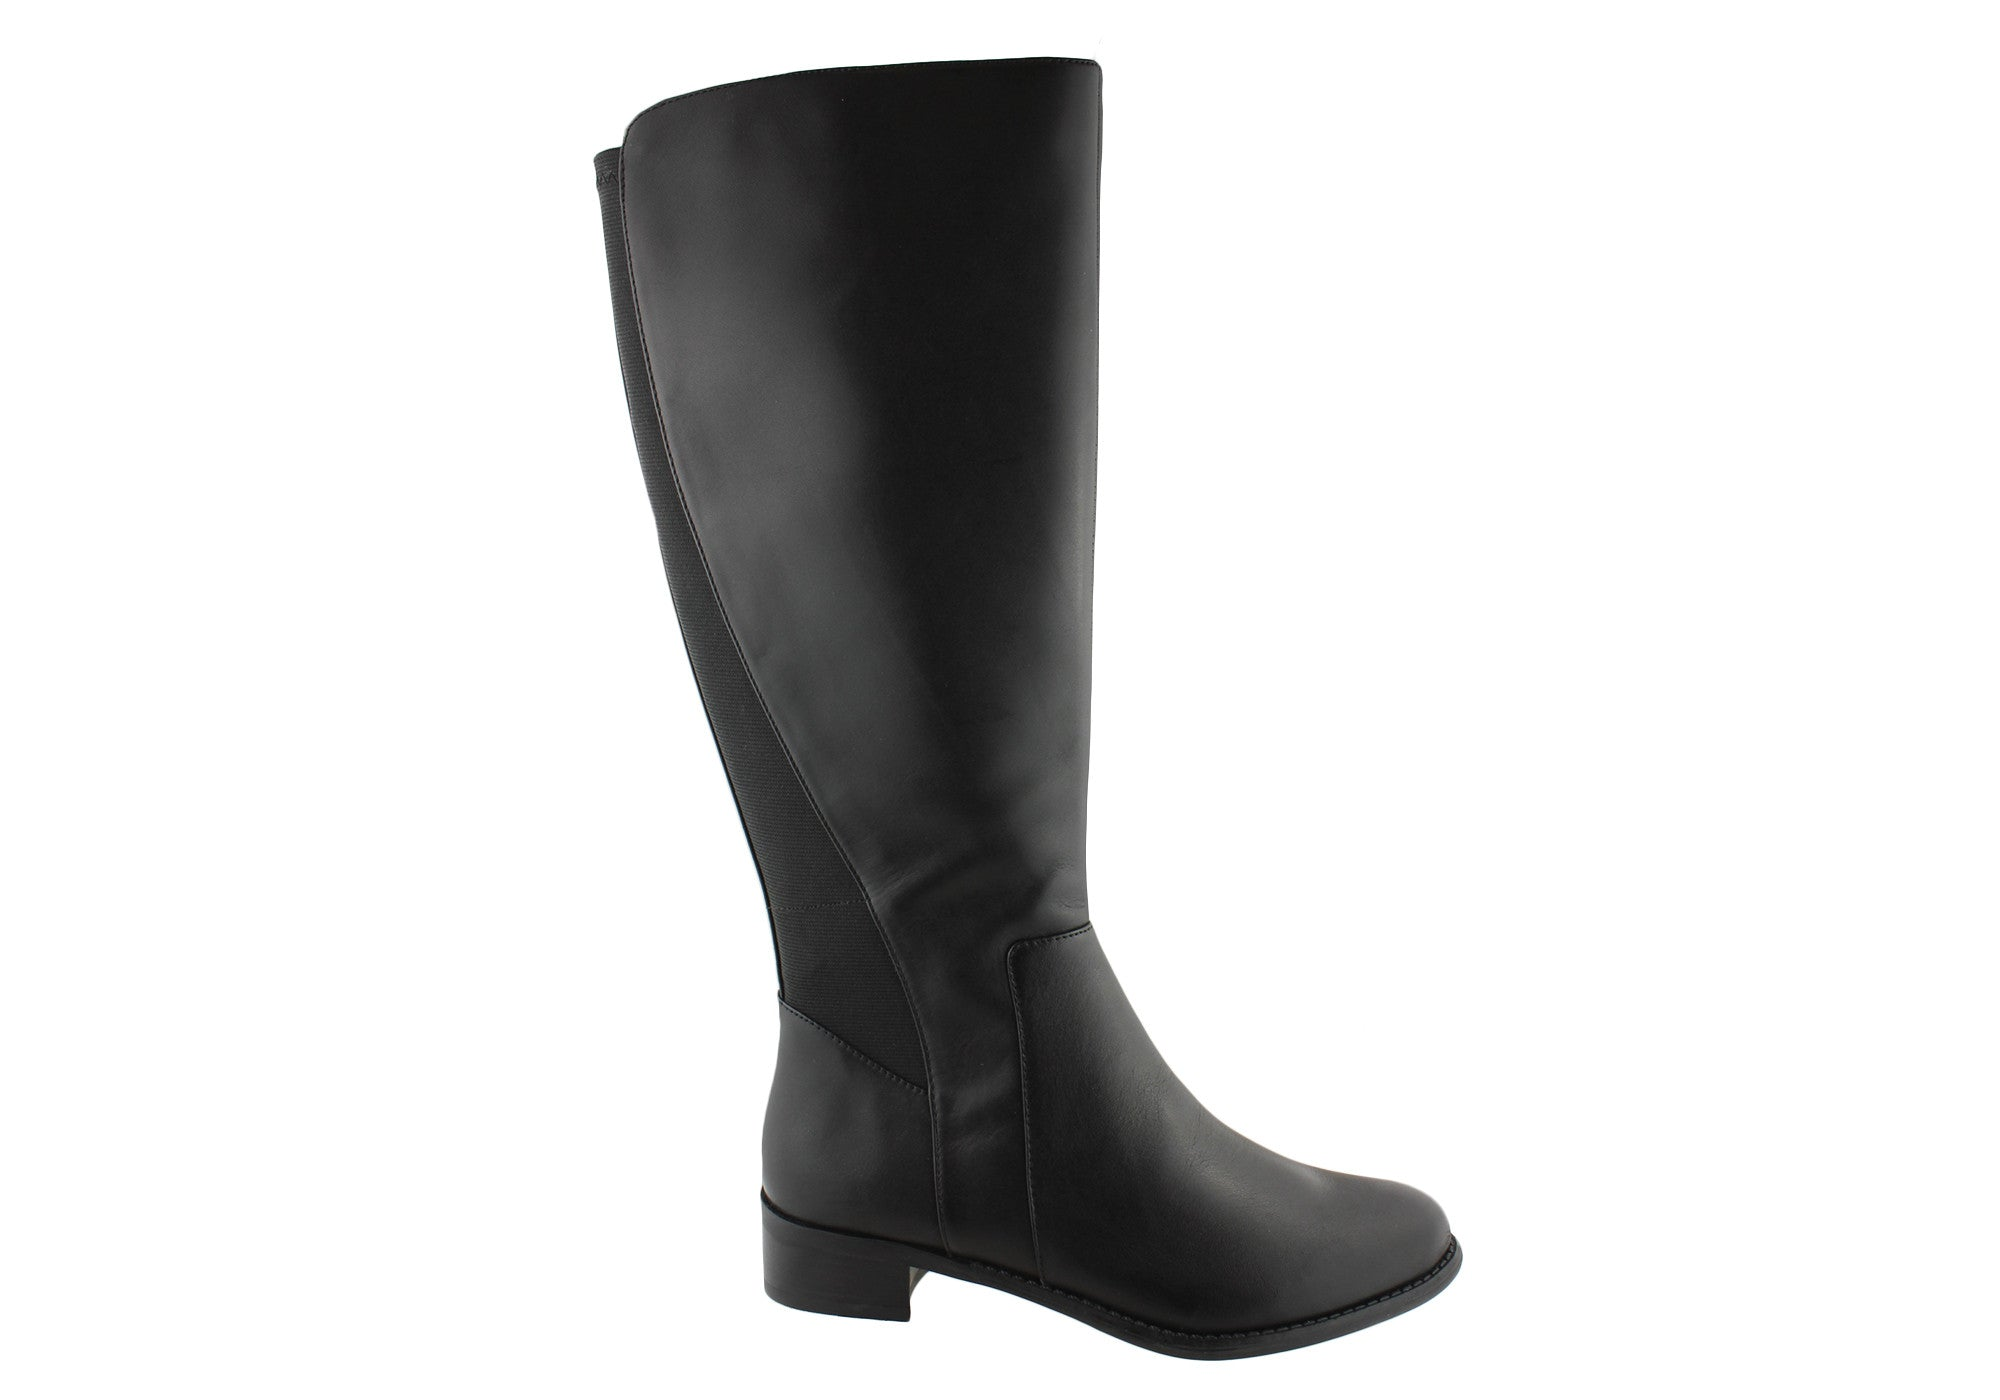 0ef9e625c4e NEW HUSH PUPPIES YARRA WOMENS LEATHER KNEE HIGH BOOTS